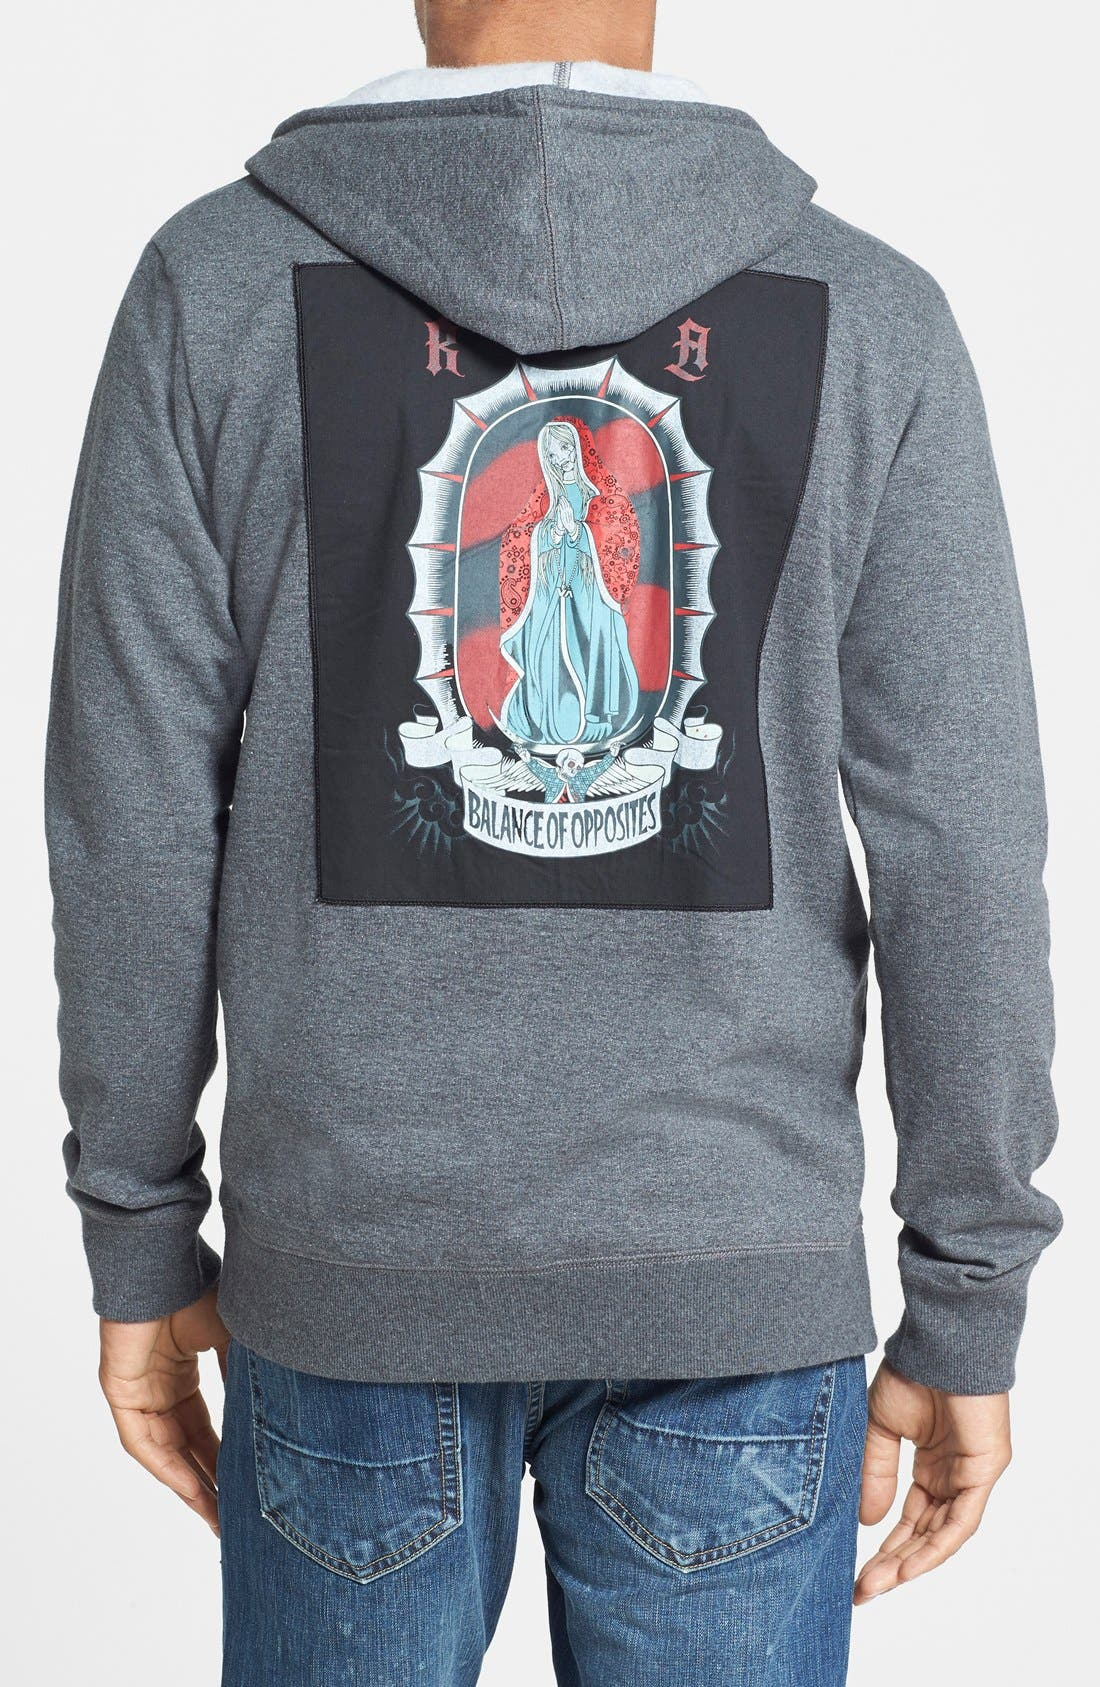 'Trust' Hoodie with Punk Rock Back Patch,                             Main thumbnail 1, color,                             051